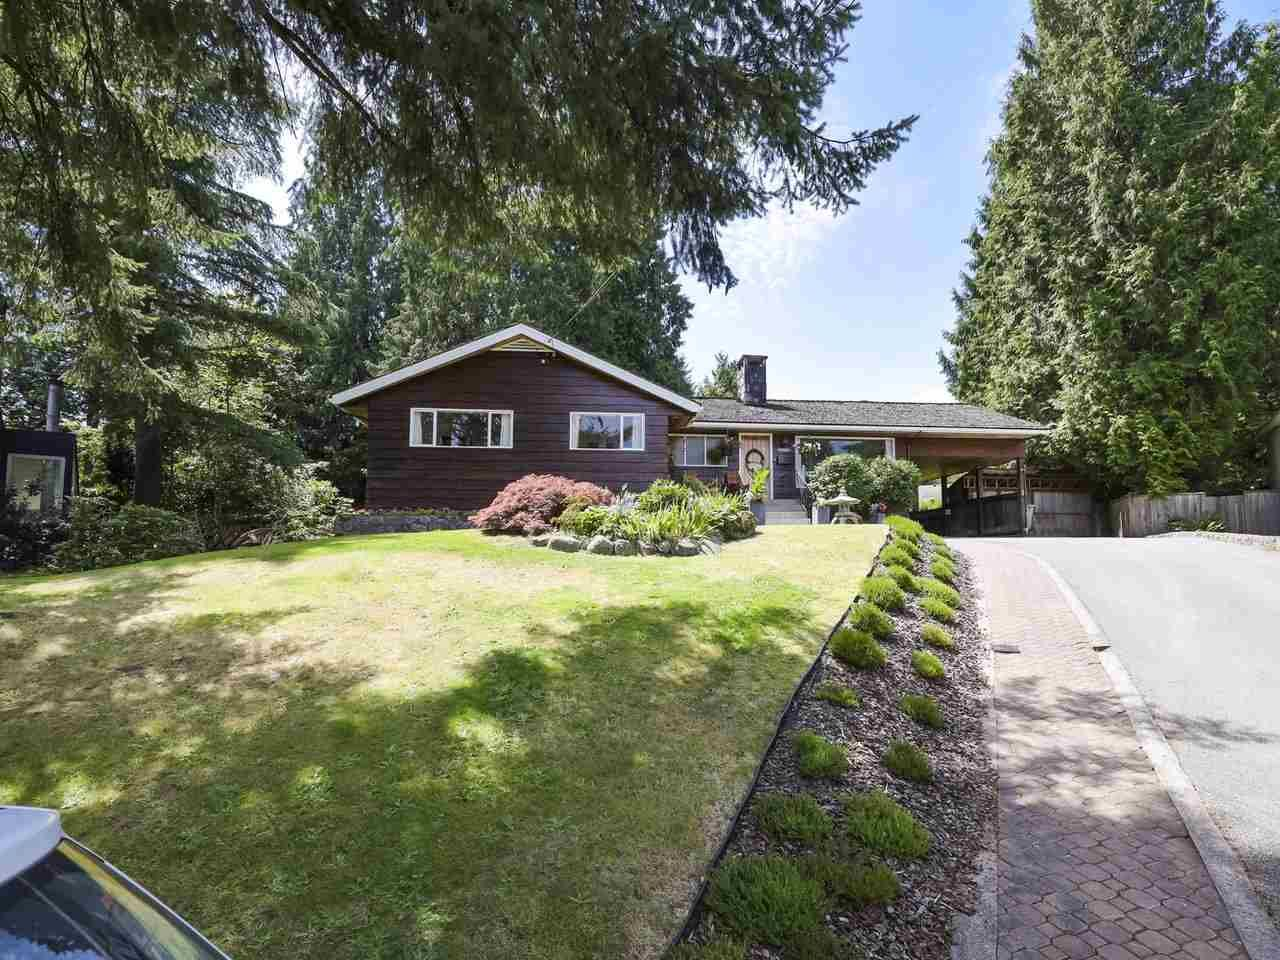 Main Photo: 739 HUNTINGDON CRESCENT in North Vancouver: Dollarton House for sale : MLS®# R2478895